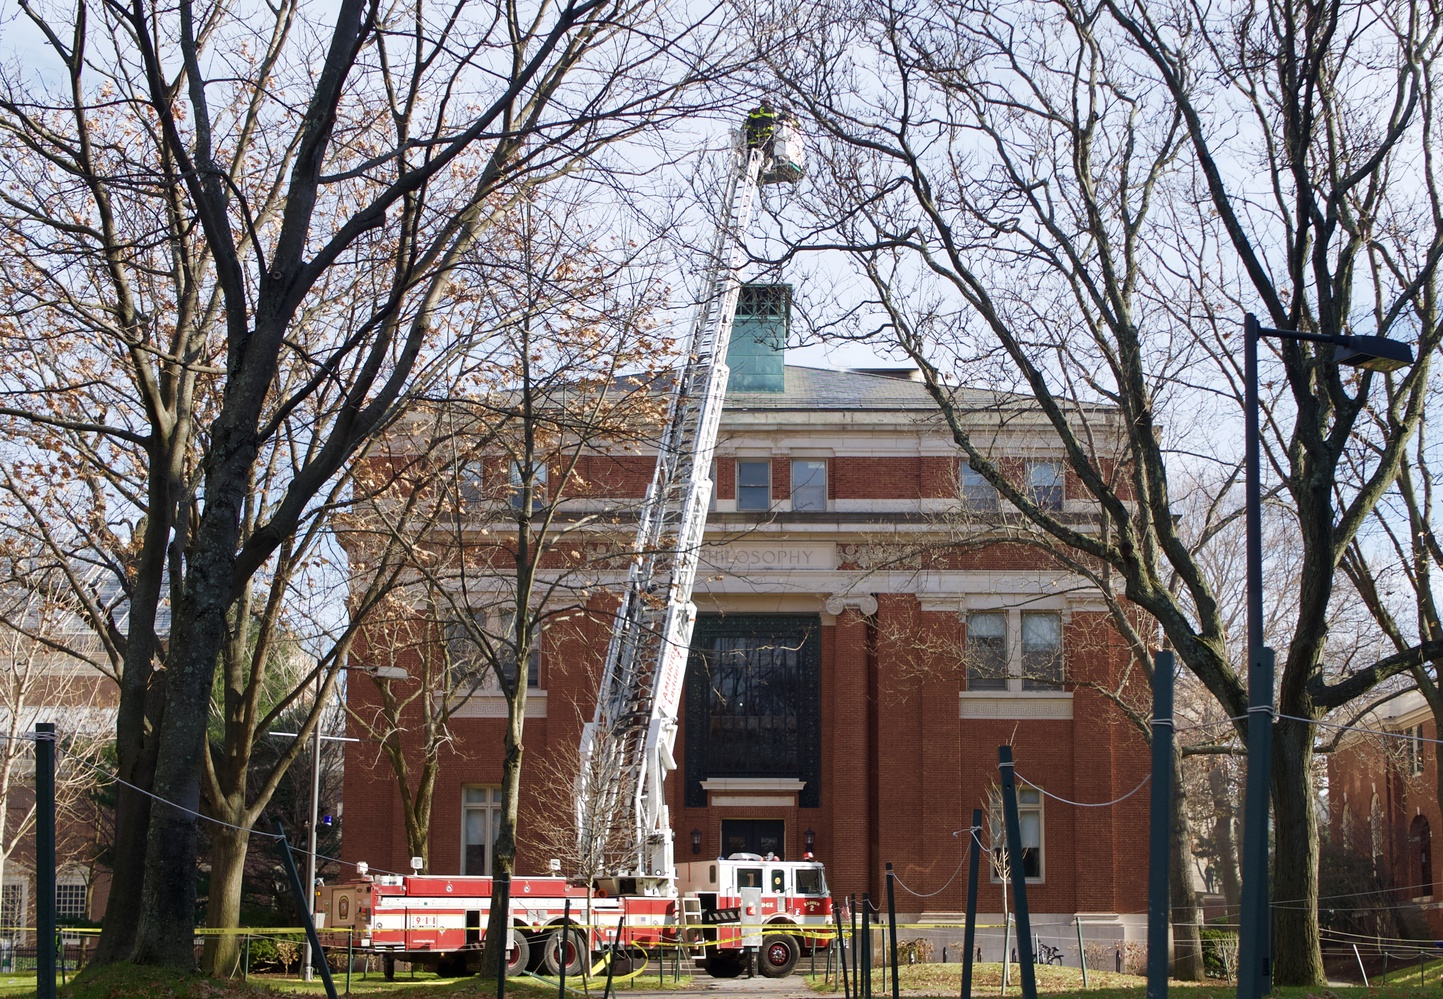 Cambridge firefighters douse the flames in Emerson Hall after smoke started pouring out of the building around noon on Friday.